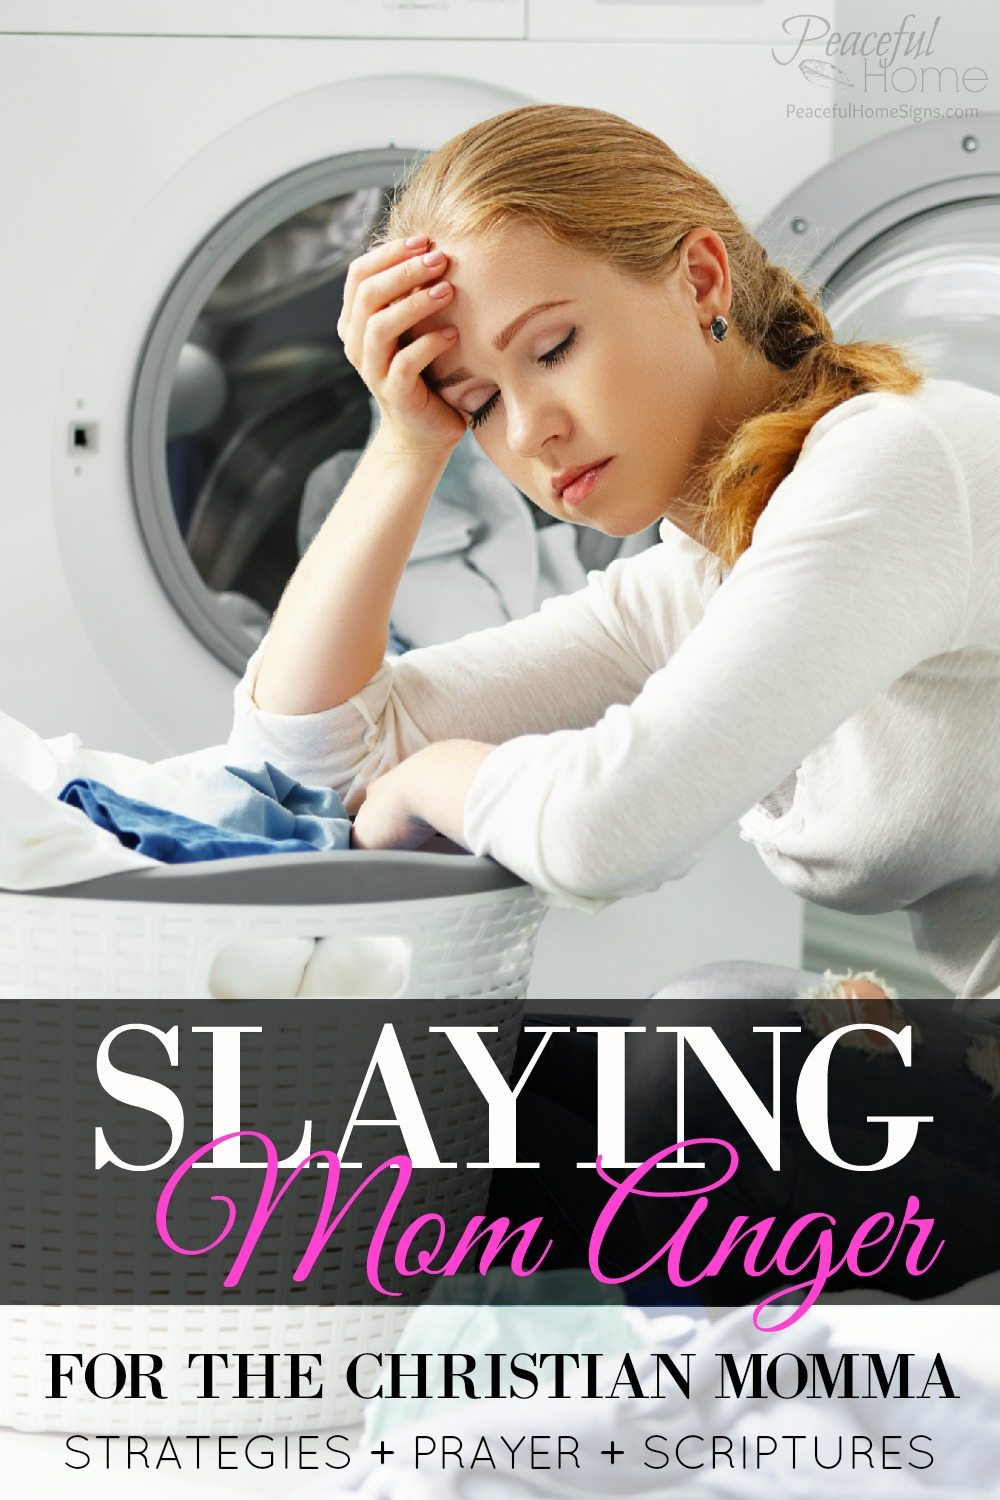 Slaying Mom Anger for the Christian Momma | mom anger | defeat mom anger | slaying mom anger | Christian mom anger | overcoming mom anger | rage at my kids | frustrated mom, stressed stay at home mom | strategies for mom anger | Prayer for mom anger | Scriptures for mom anger